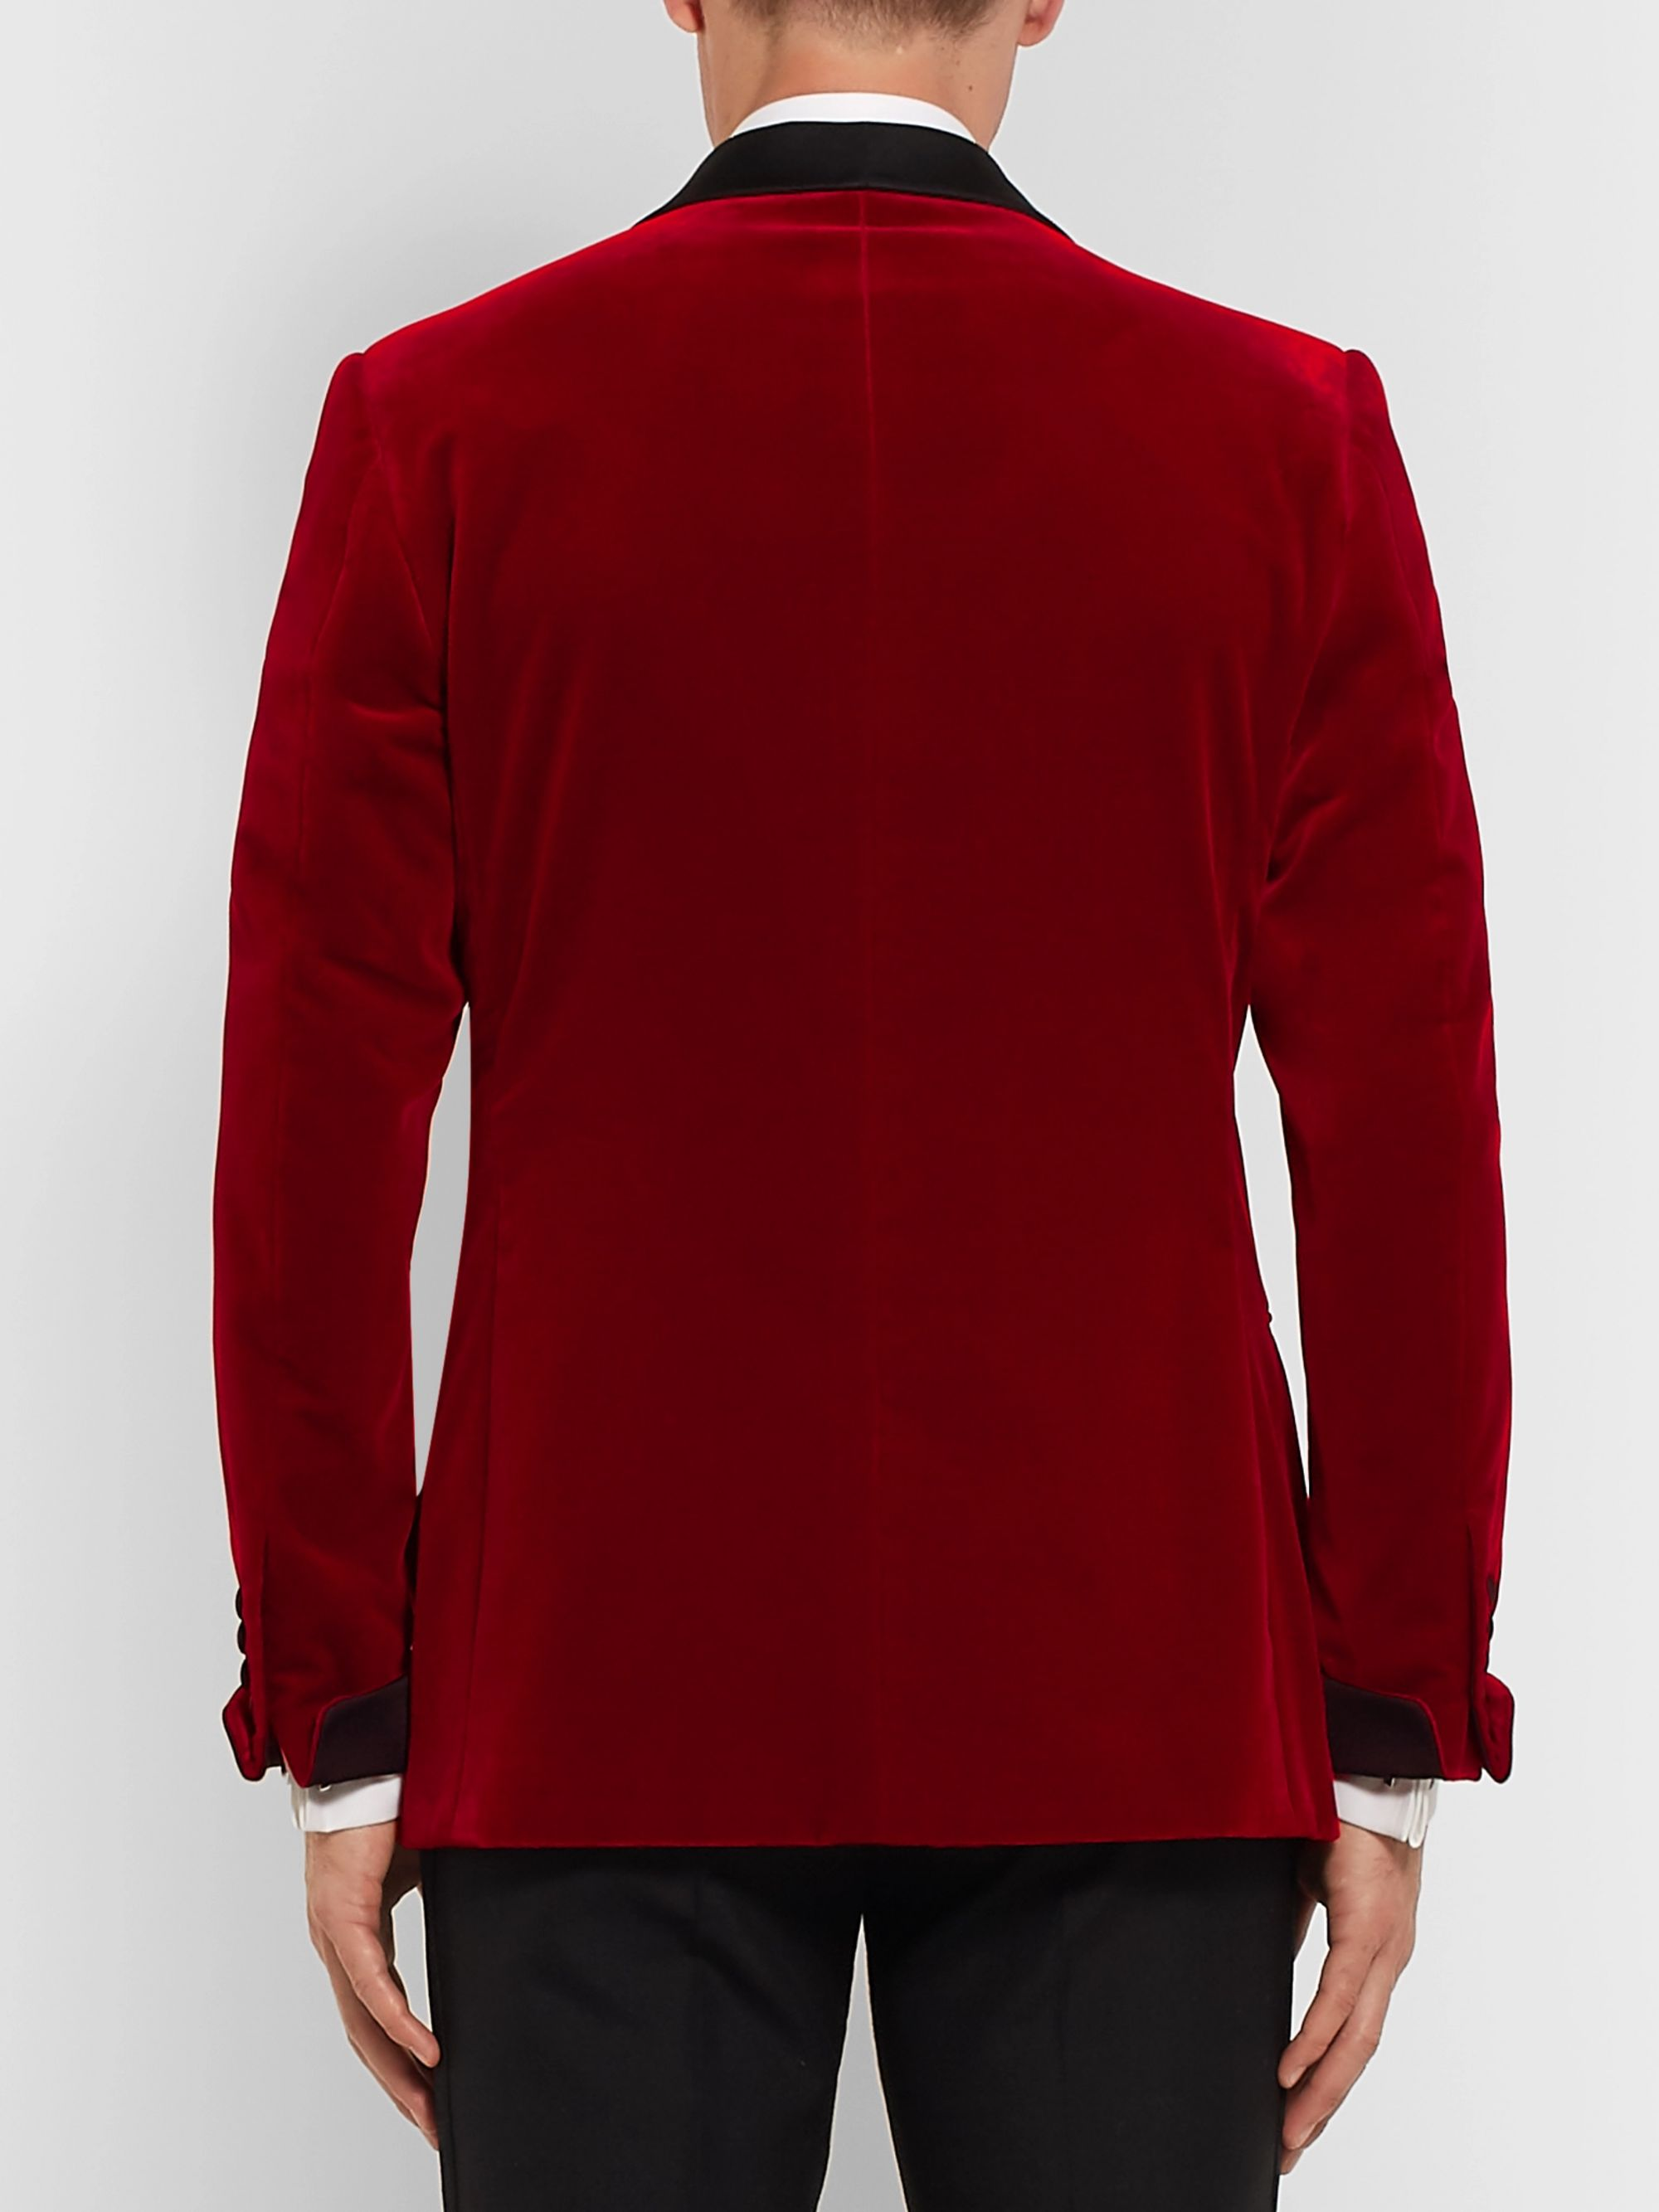 Kingsman Red Slim-Fit Twill-Trimmed Cotton-Velvet Tuxedo Jacket